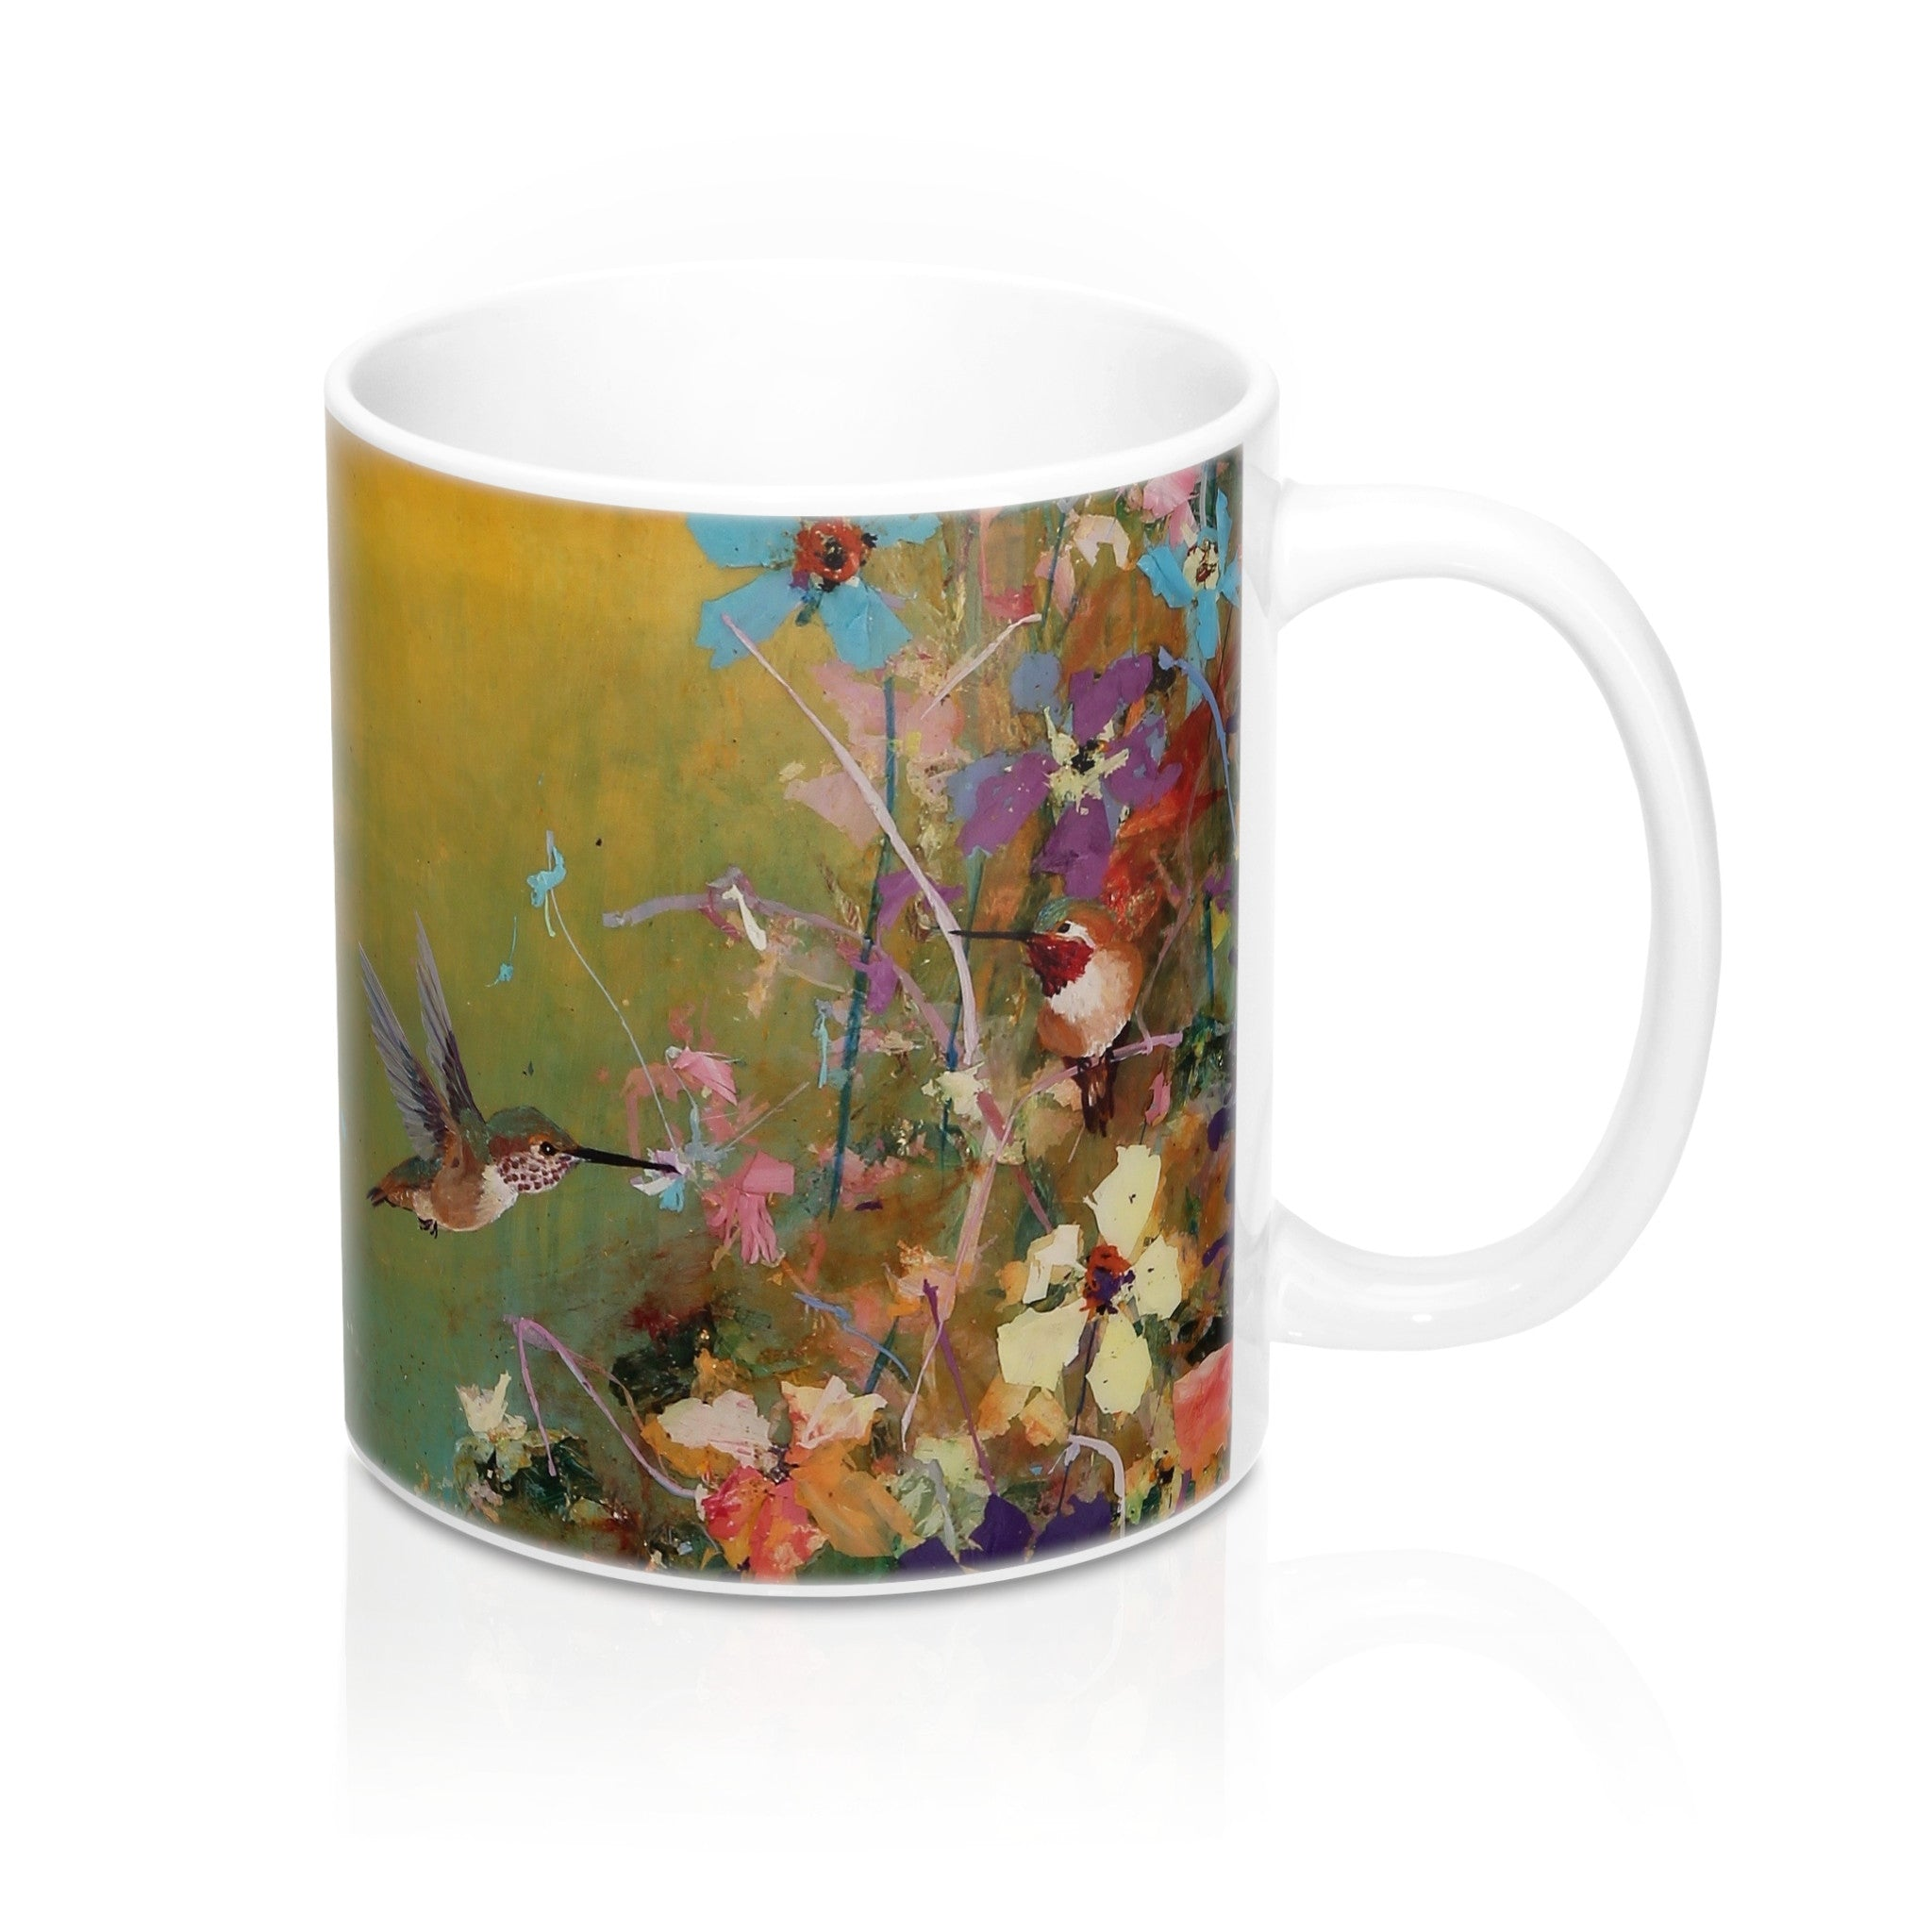 Wonderland Family - Hidden Hummer Mug 11oz